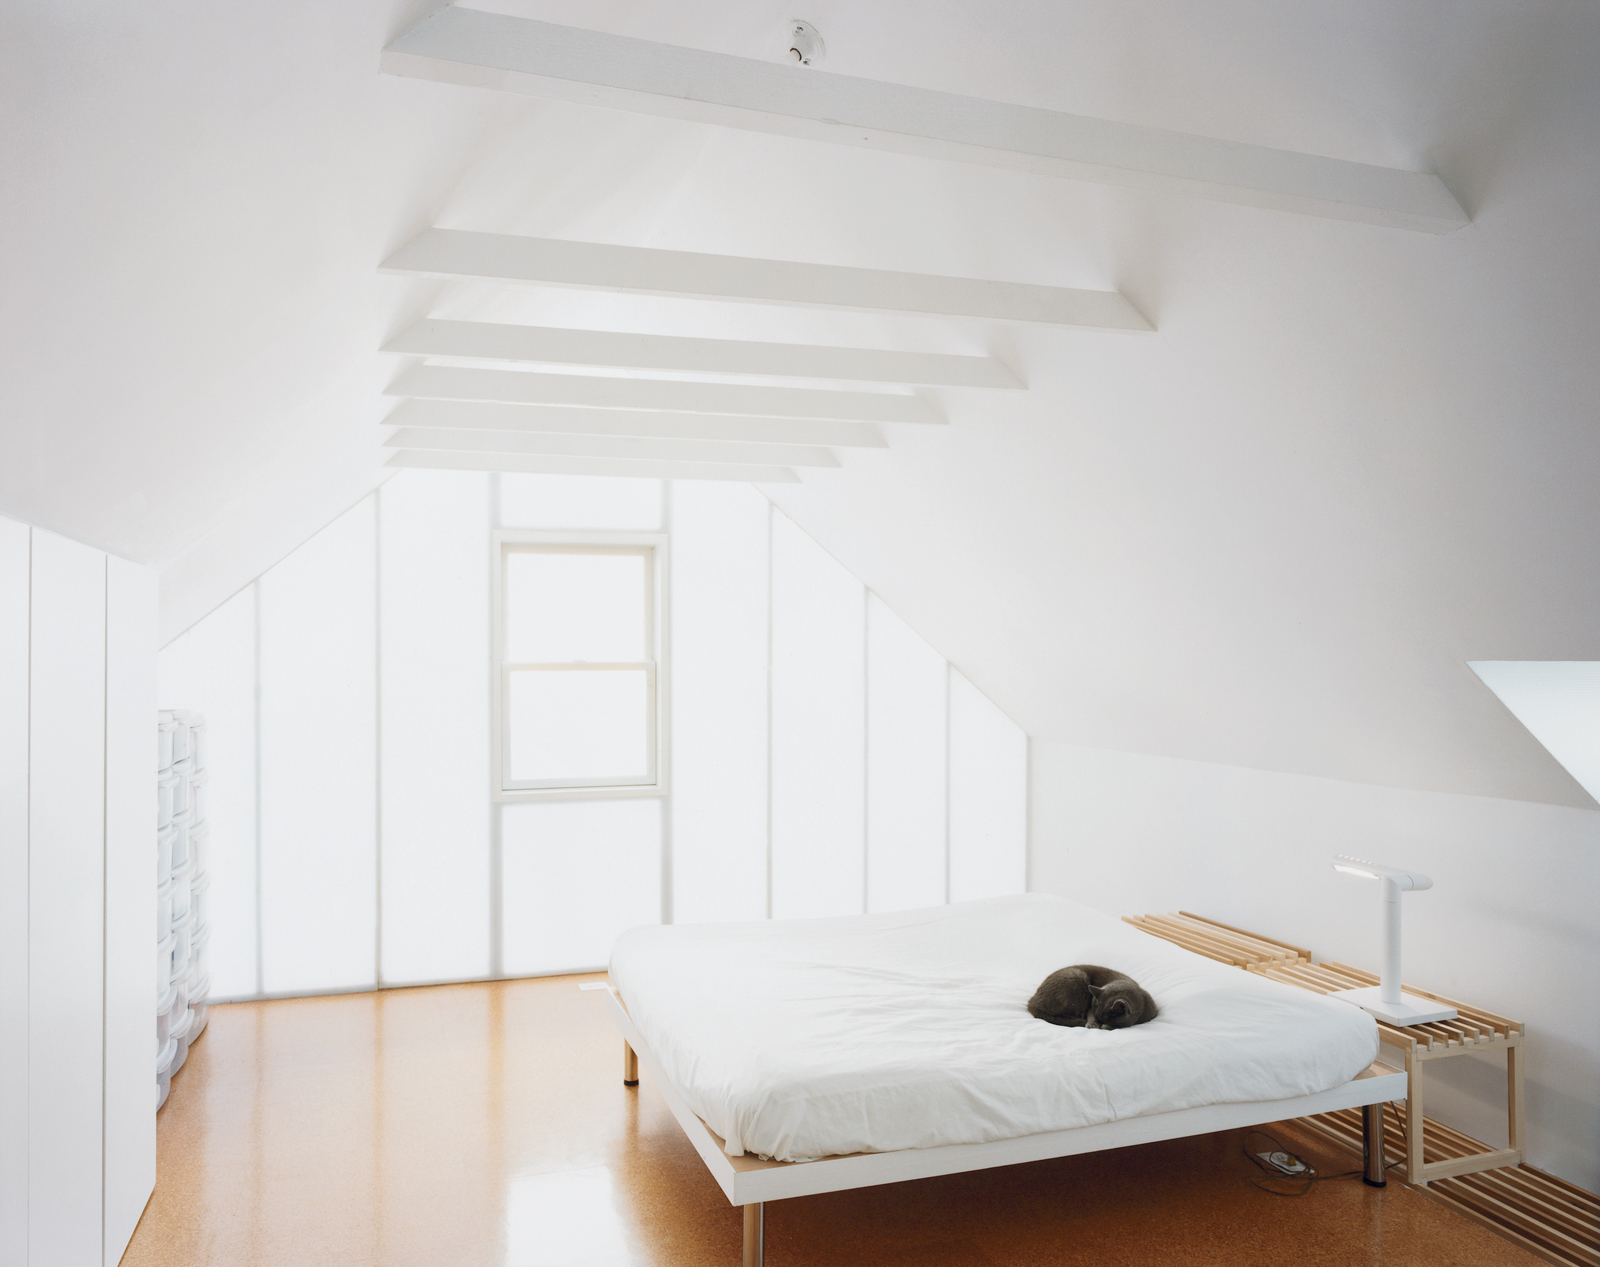 Uni exposed the ceiling beams, formerly concealed by drywall and a kitschy light fixture upon which Schenk would hit his head. They built a platform bed using a couple of hollow doors as a surface for the mattress.